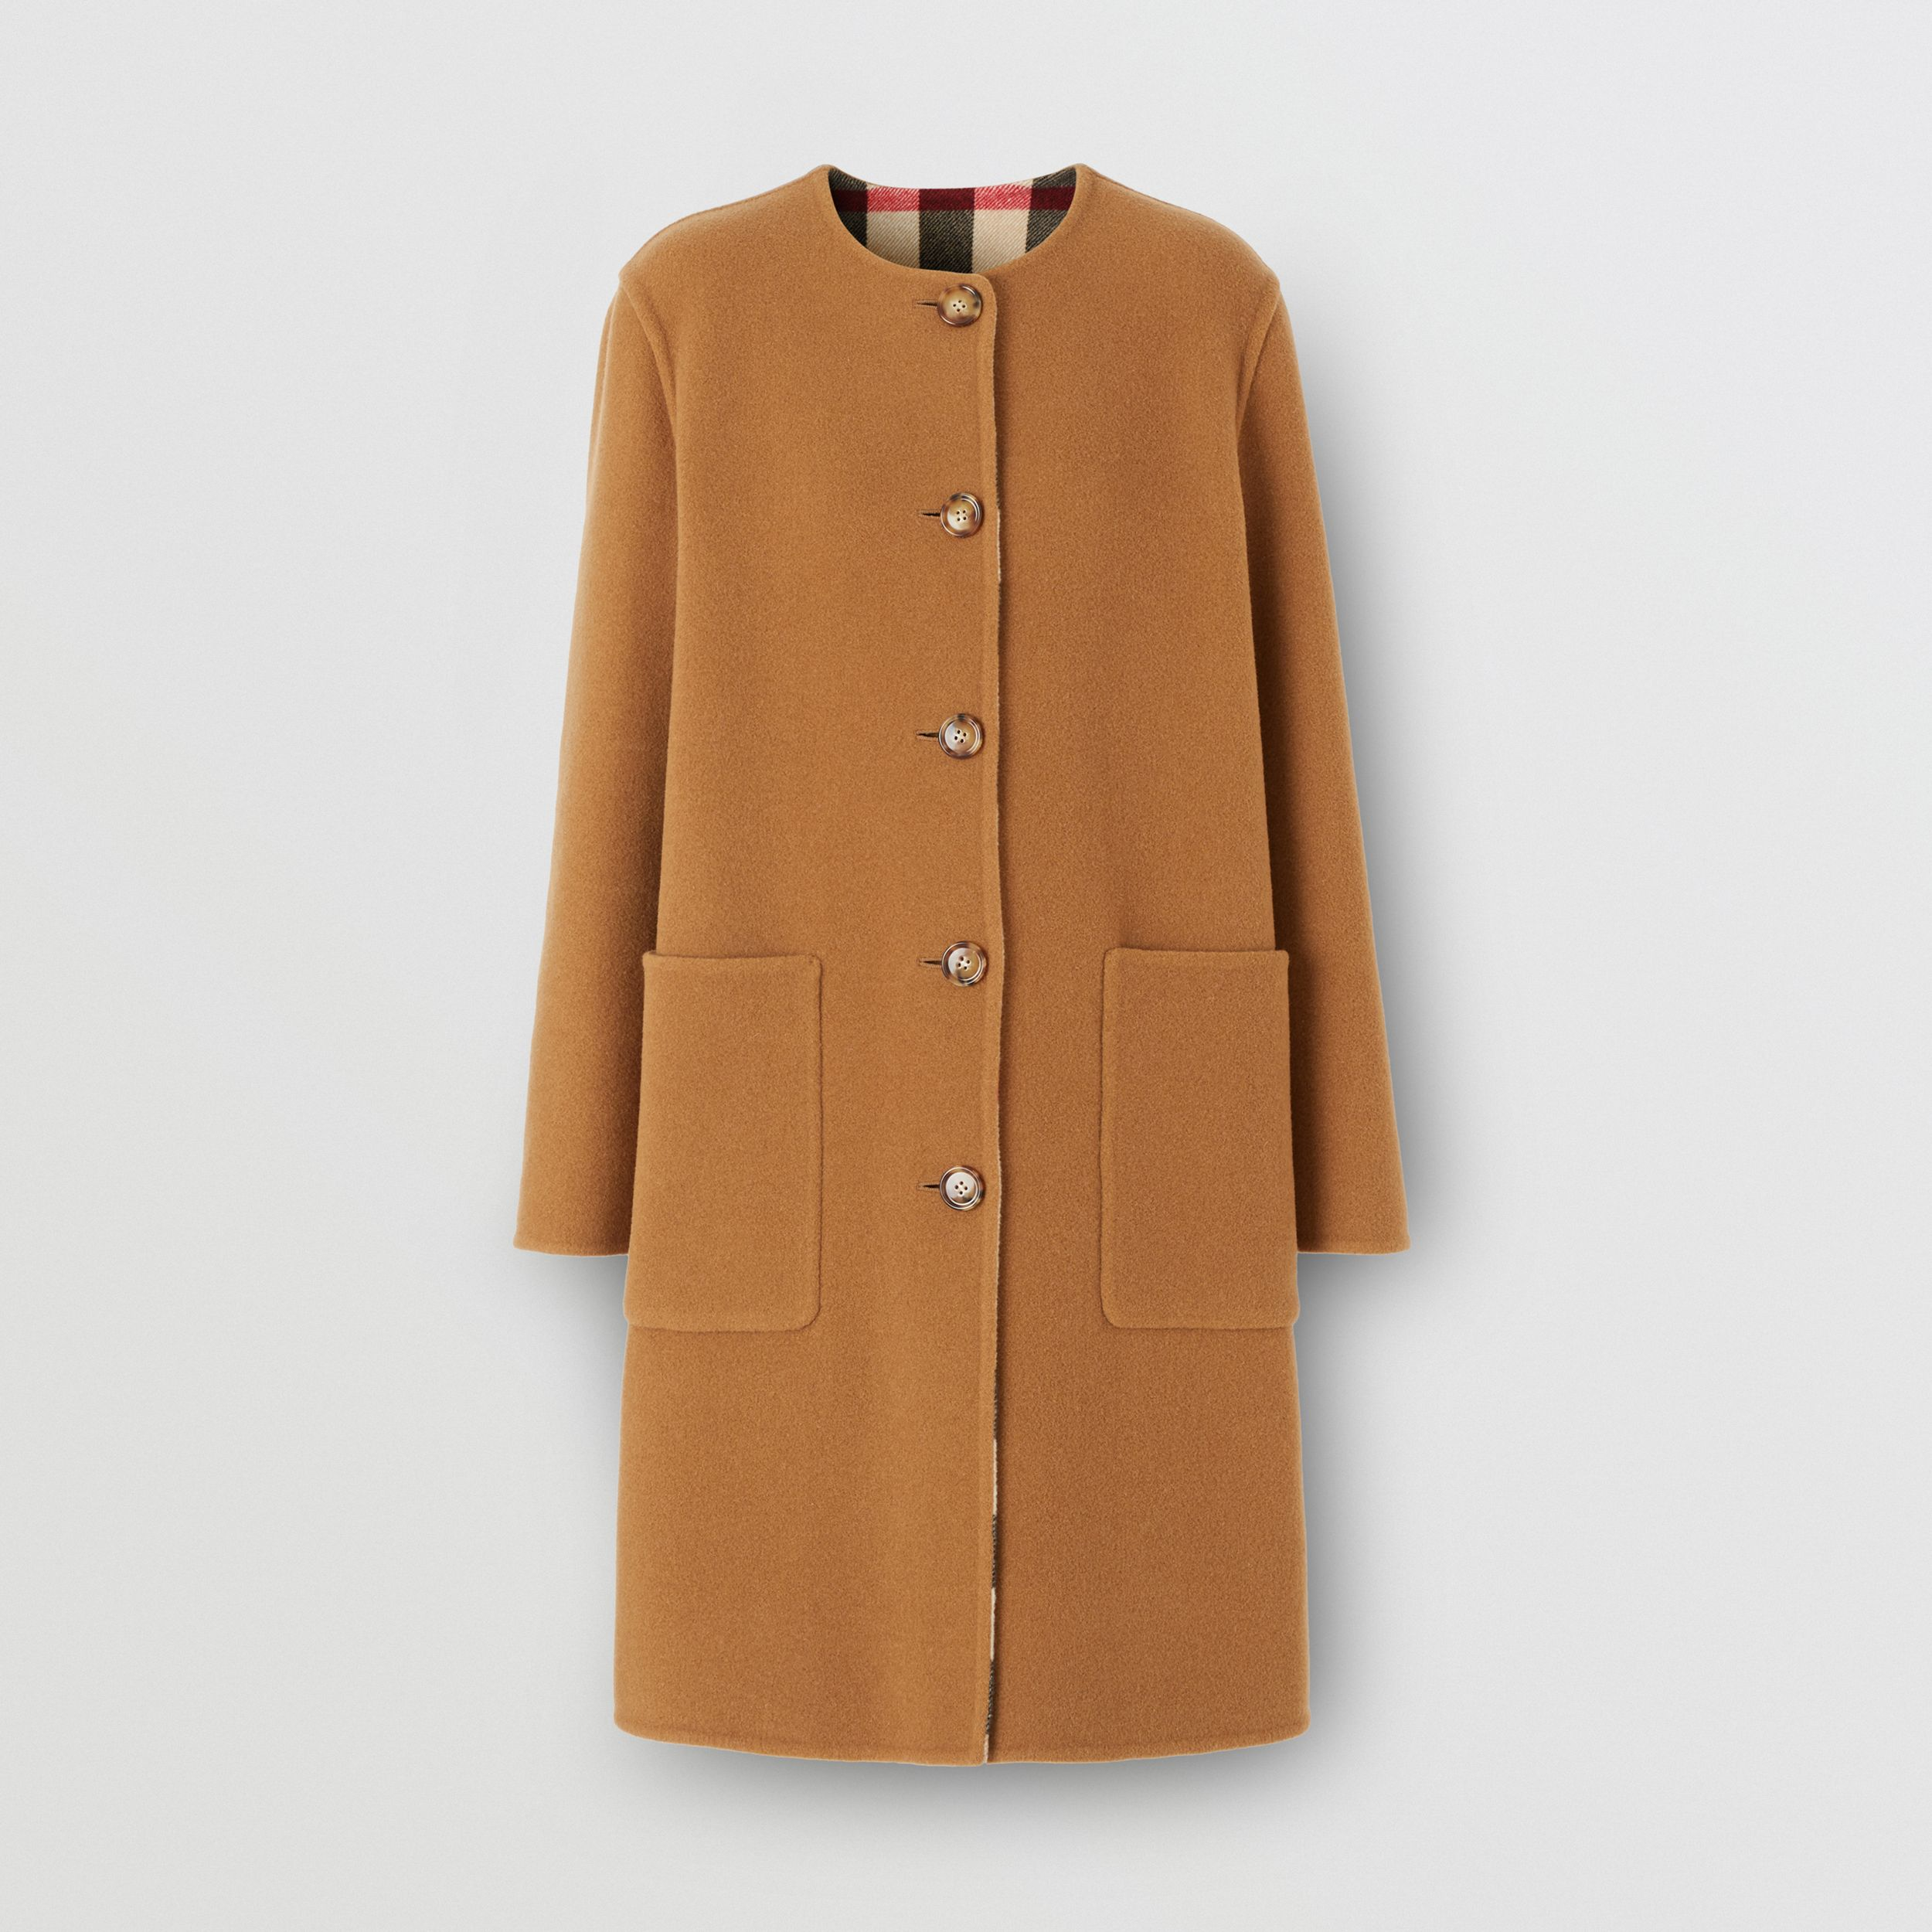 Reversible Check Technical Wool Coat in Mid Camel - Women | Burberry - 3